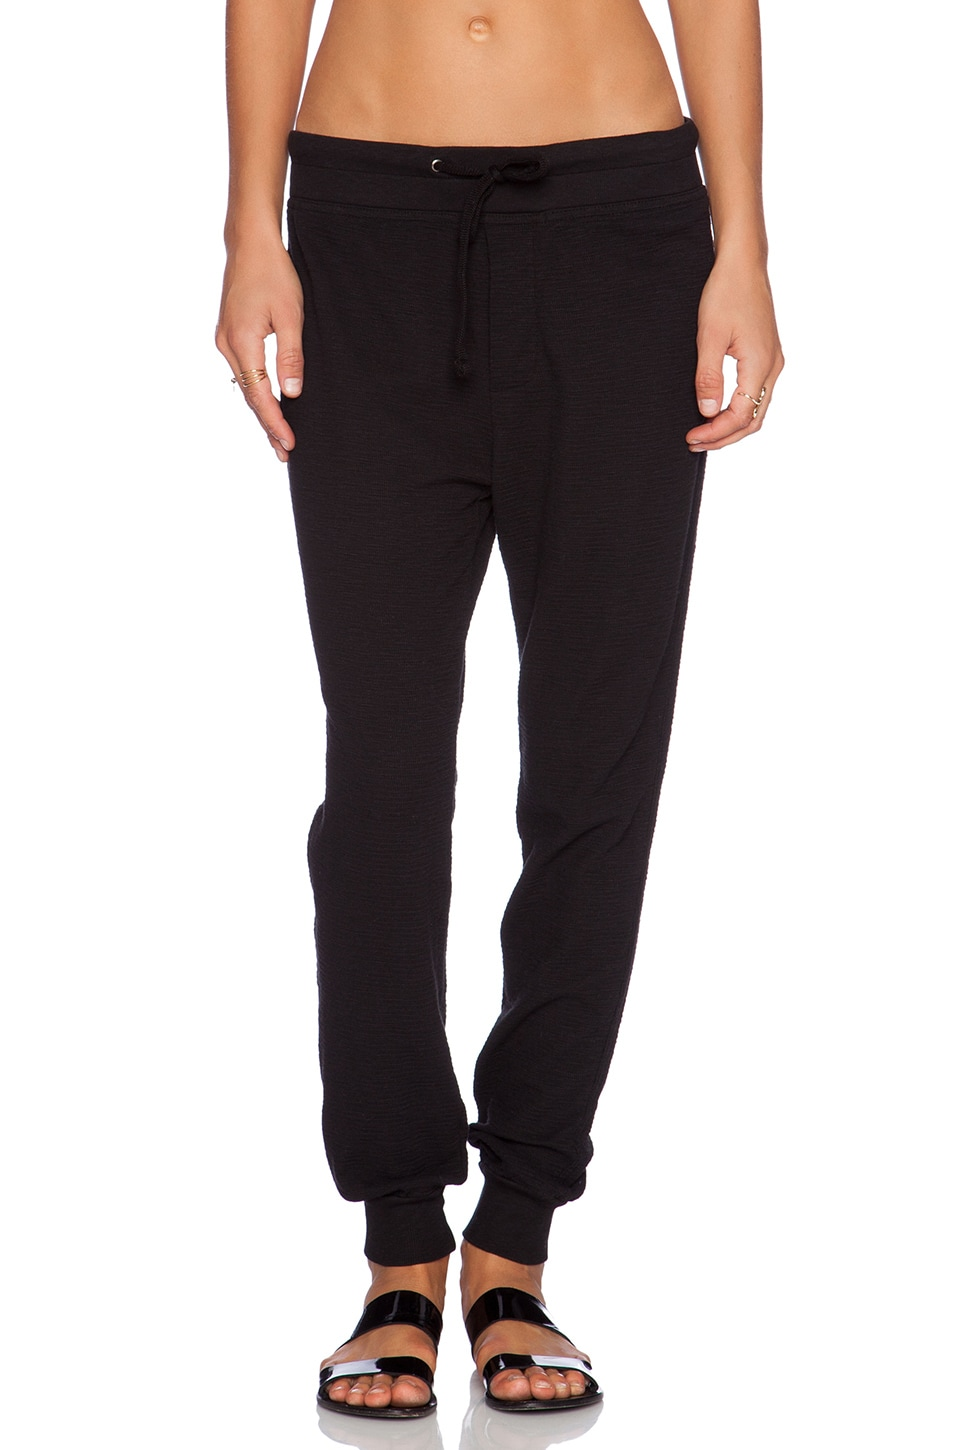 James Perse Thermal Sweatpant in Black